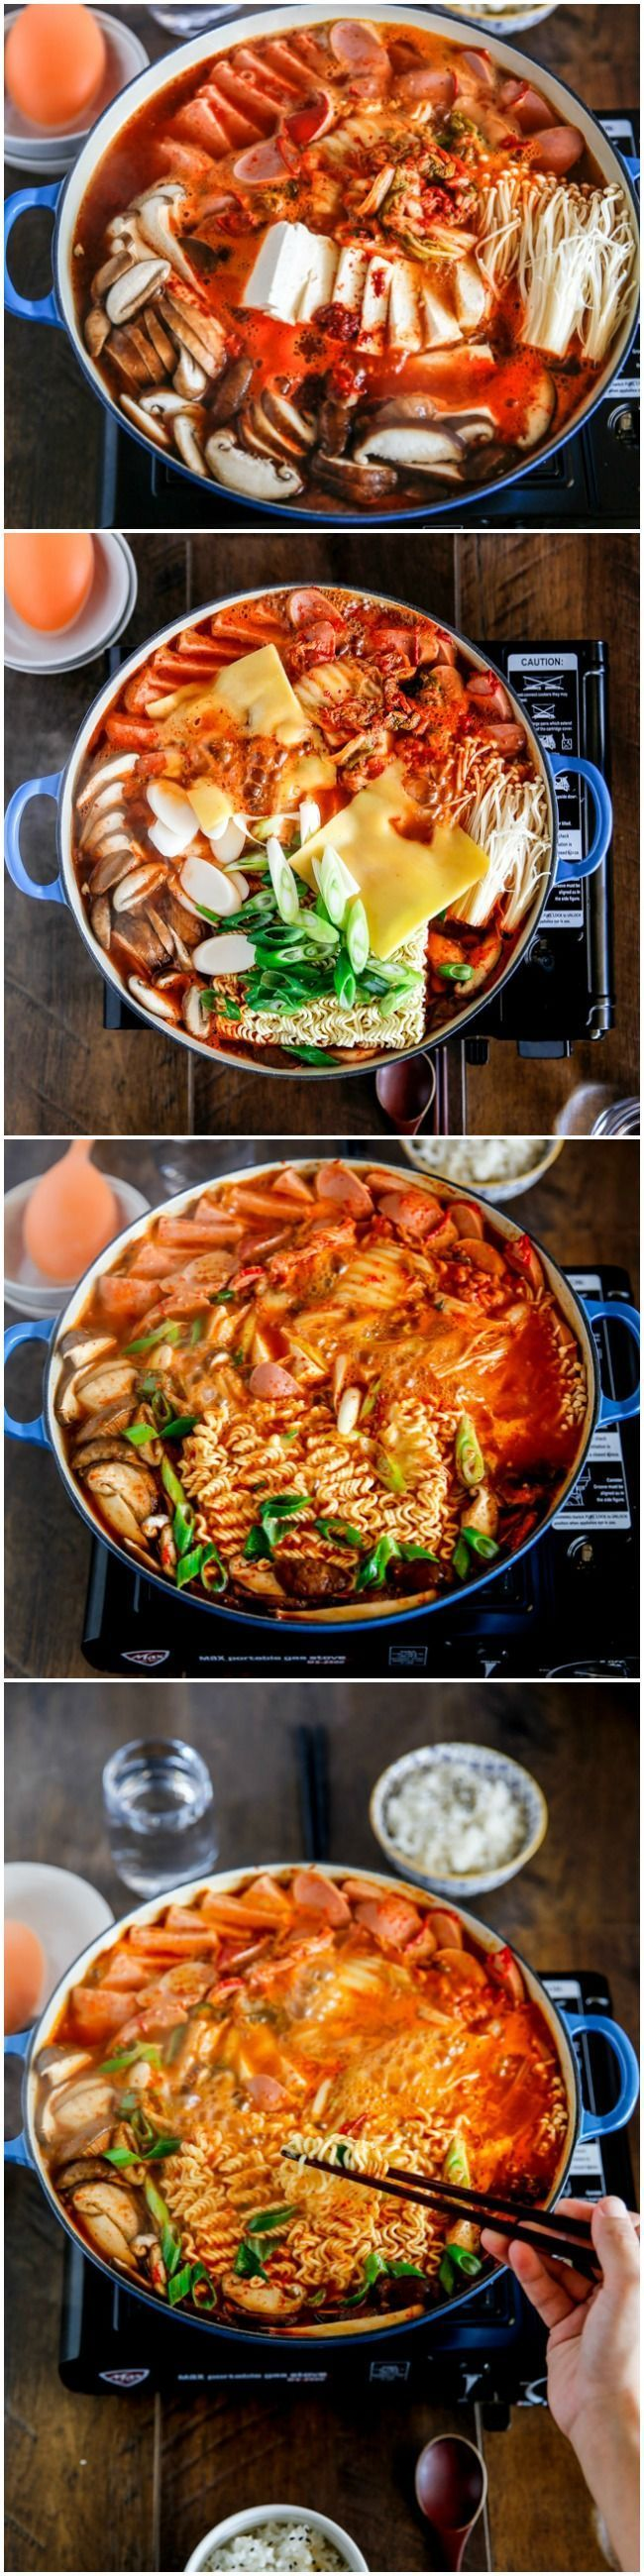 Korean Army Stew Budae Jjigae Is A Korean Fusion Hot Pot Dish Loaded With Kimchi Spam Sausages Mushrooms Instant Ramen Noodles Food Recipes Asian Cooking